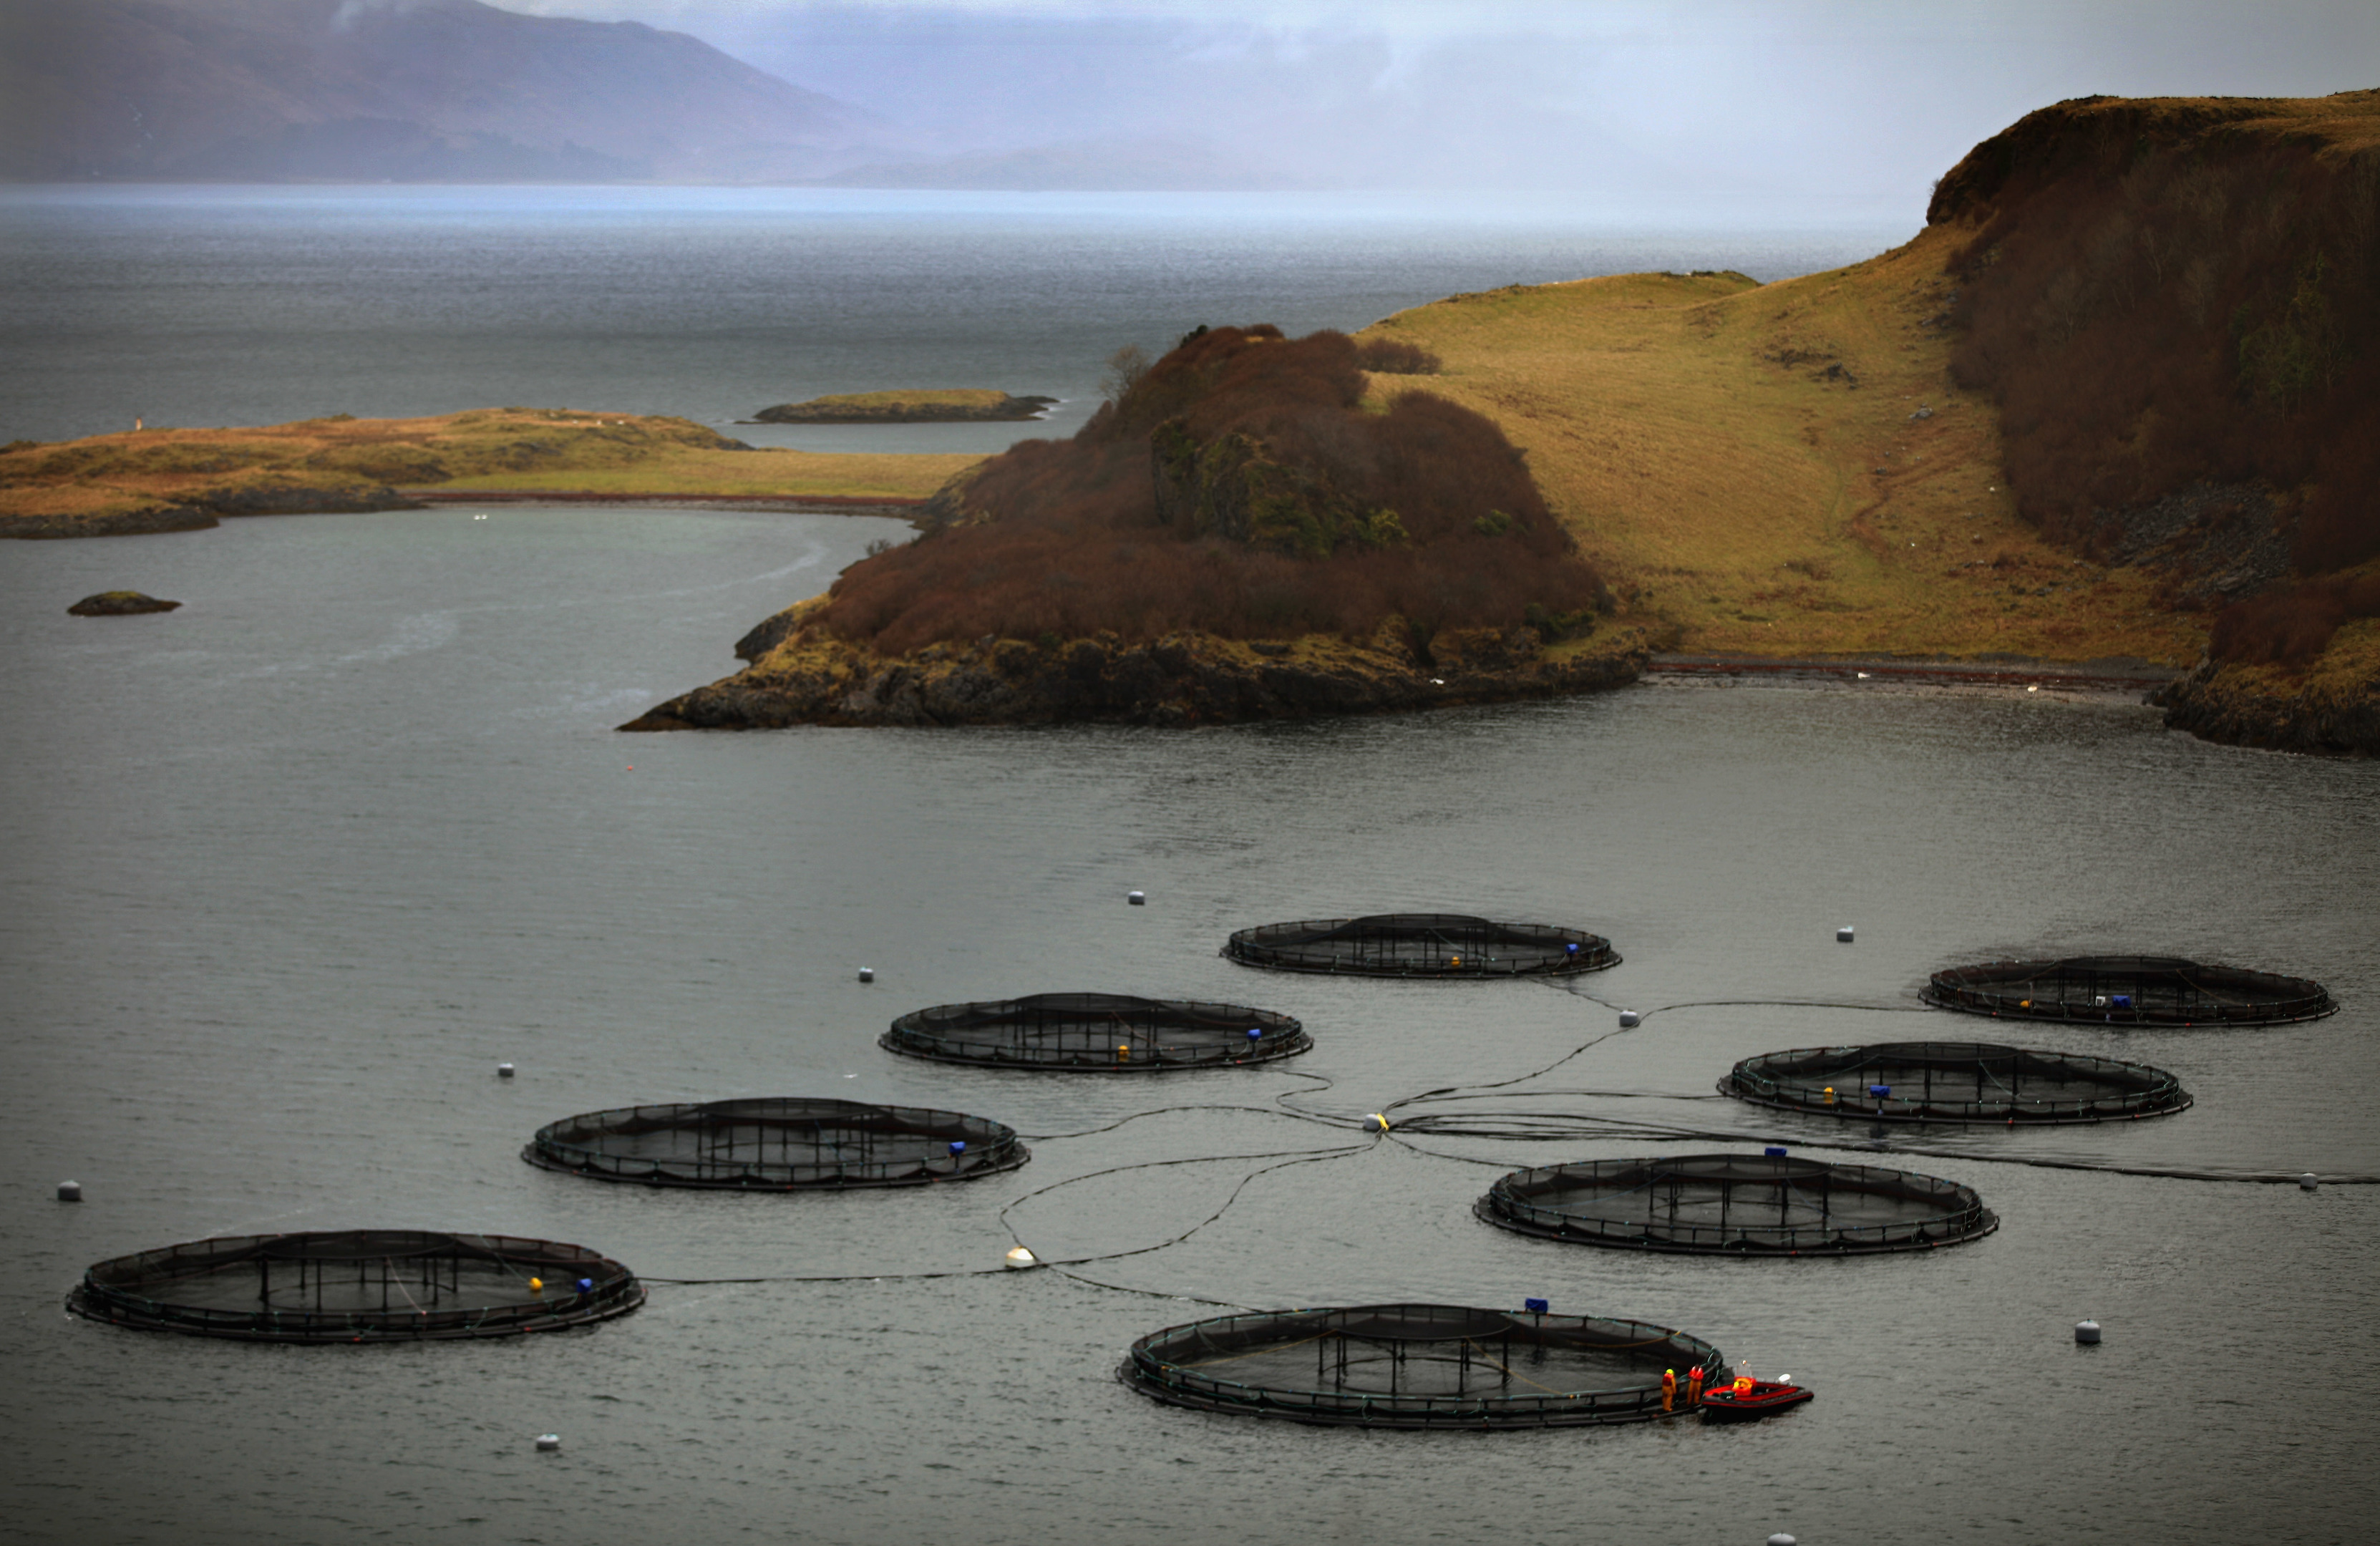 Scotland's fish farming industry has also been boosted by an agreement between the Scottish Government and China to export salmon to Asia. (Jeff J Mitchell/Getty Images)